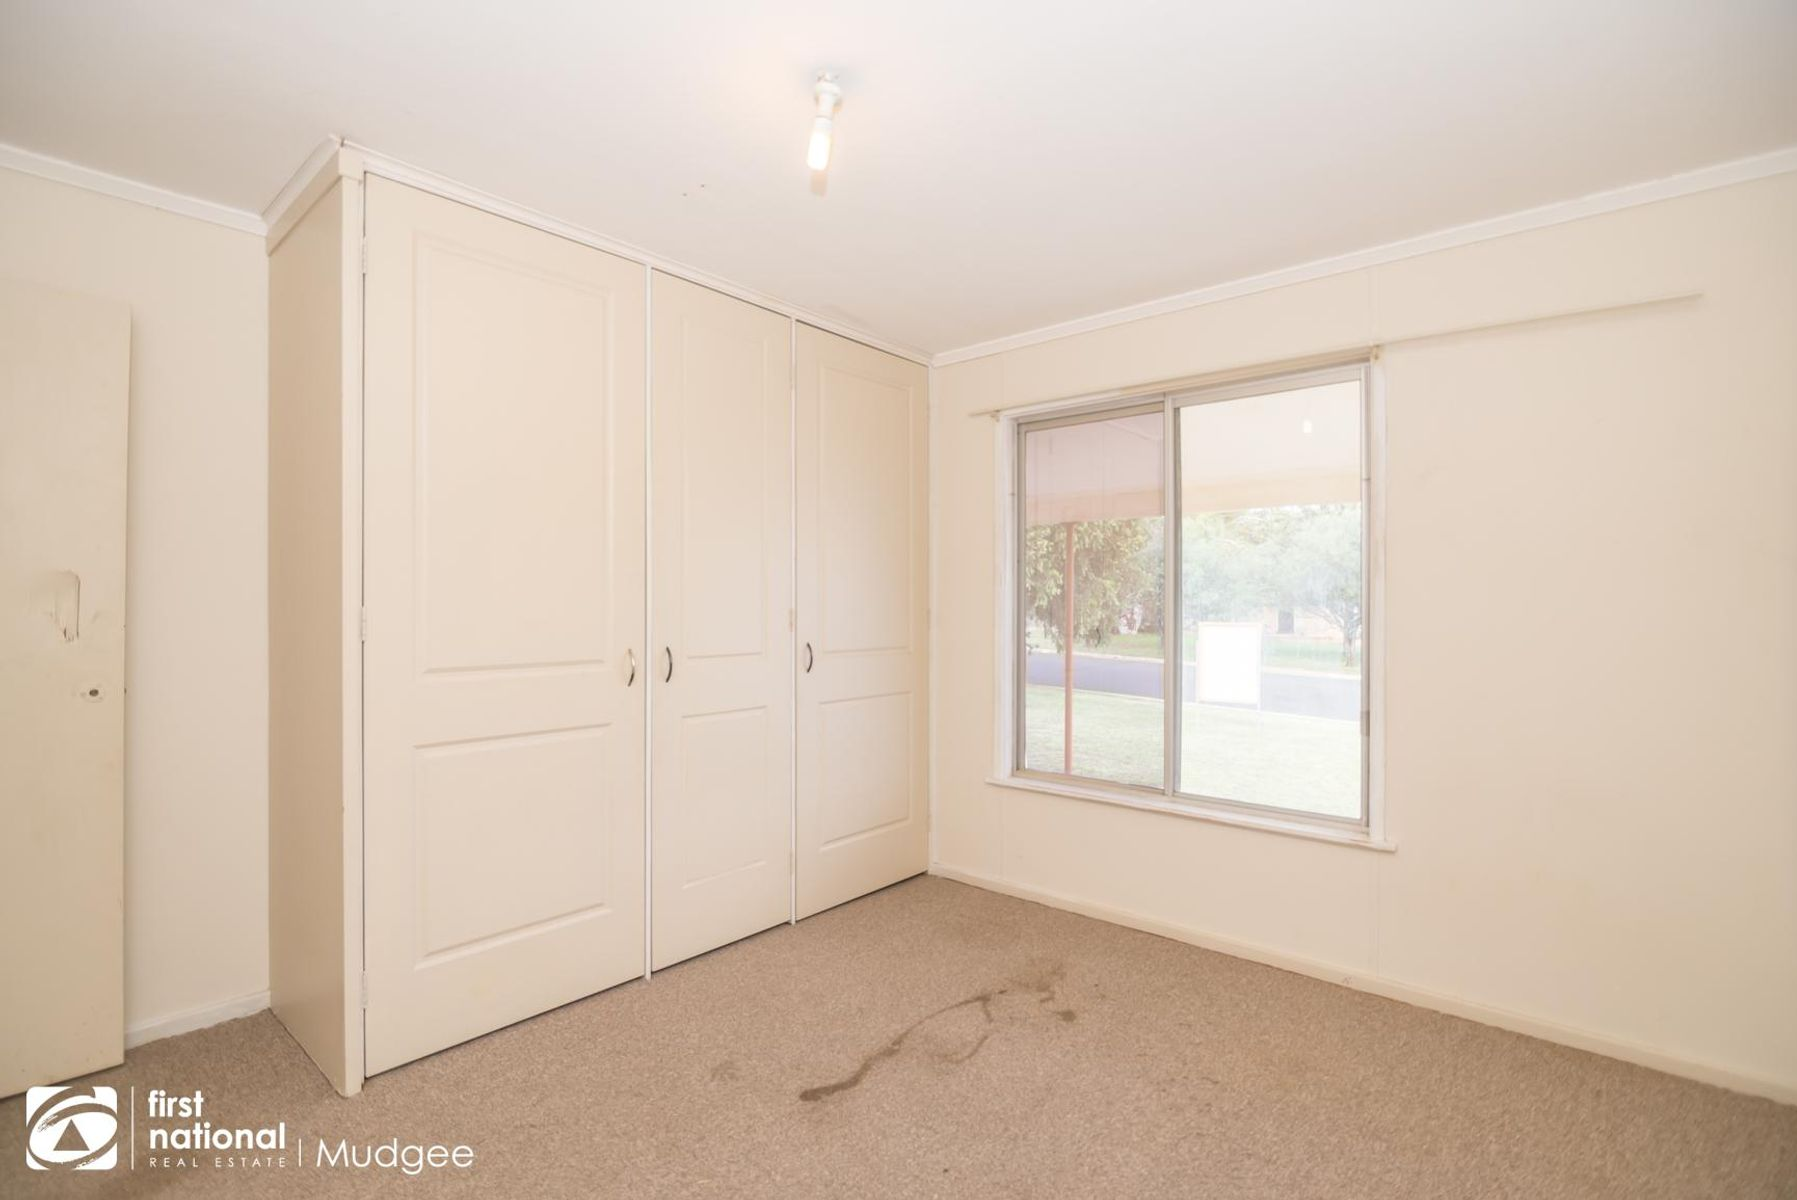 239 Church Street, Mudgee, NSW 2850